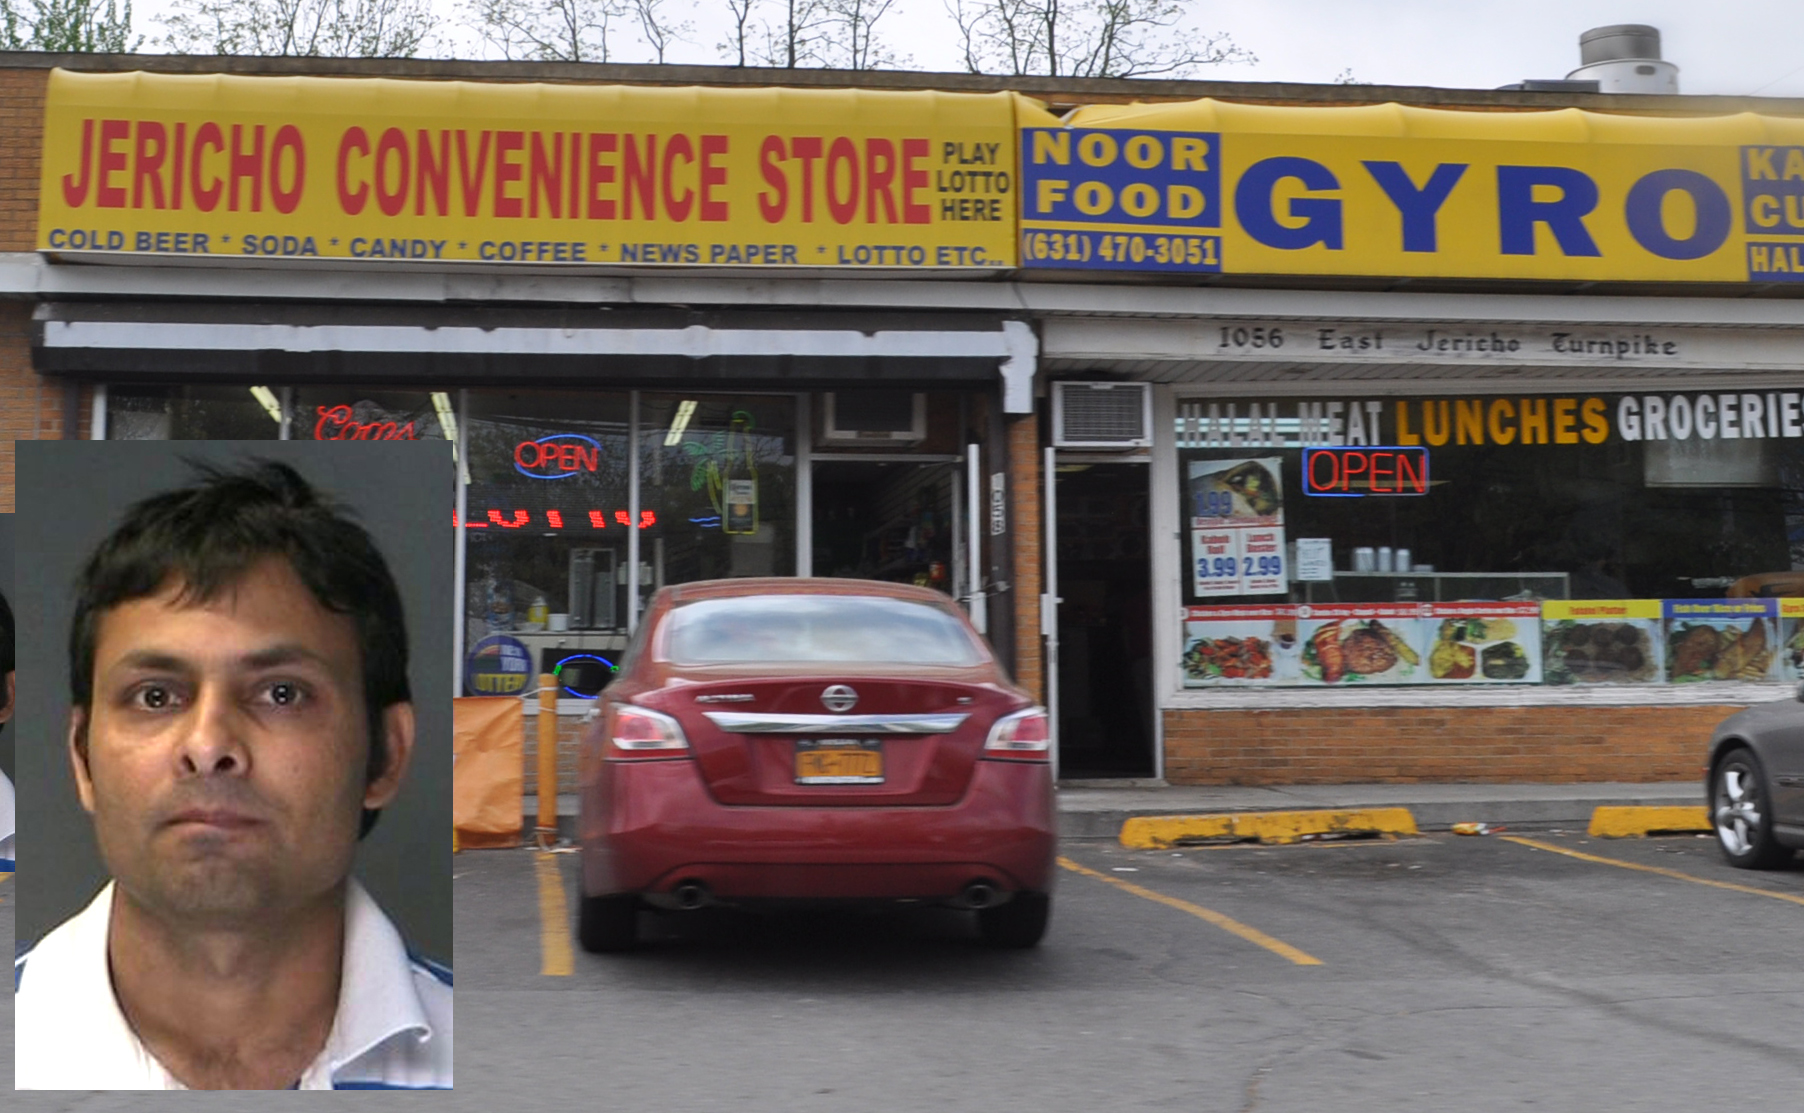 Bitinkunar Patel, inset, is accused of making a lewd offer to an 11-year-old boy who came into the Jericho Convenience store Saturday.